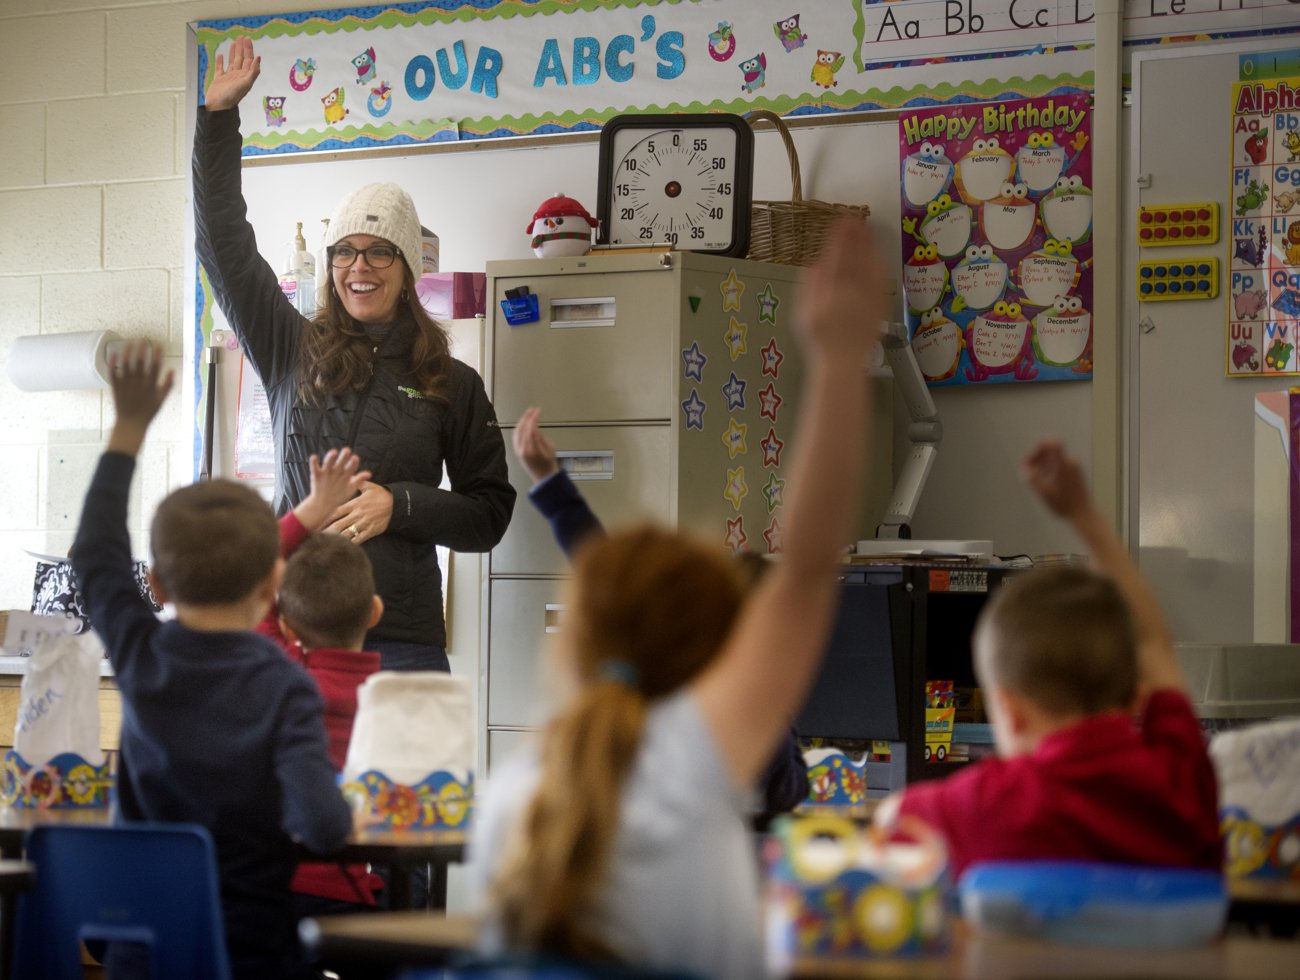 """<p>As Michigan students fail to keep up on national tests, gubernatorial candidates are fighting to alight on the set of ideas that boost student achievement and set them up for success once they graduate.</p> <p>MLive in its Michigan Beyond series highlighted challenges facing Michigan's education system, from signs of a <a href=""""https://www.mlive.com/news/index.ssf/2018/05/michigan_beyond_teacher_qualit.html"""" rel=""""noreferrer"""" target=""""_blank""""><u>looming teacher shortage</u></a> to a <a href=""""https://www.mlive.com/news/index.ssf/2018/05/michigan_beyond_school_funding.html"""" rel=""""noreferrer"""" target=""""_blank""""><u>school-funding method</u></a> some experts would like to go back to the chalkboard on.</p> <p>As Michigan moves toward a diverse economy with homegrown talent, candidates and regular people from all over the political spectrum have identified education as a key area the state can improve.</p> <p>We scanned candidates' platforms and listened back to the statewide, two-party primary debate that took place in May to summarize where candidates stood on a host of issues MLive has discussed with students, teachers and experts.</p> <p><em><strong>RELATED: Read</strong></em> <em><strong>MLive's </strong></em><a href=""""https://topics.mlive.com/tag/michigan-beyond""""><em><strong>Michigan Beyond</strong></em></a> <em><strong>series,</strong></em> <em><strong>which explores the issues of Michigan's economy, education and infrastructure with a keen eye on where Michigan is headed in the future.</strong></em></p> <p>The candidates' positions are listed just like you remember from roll-call on the first day of school, in alphabetical order.</p>"""